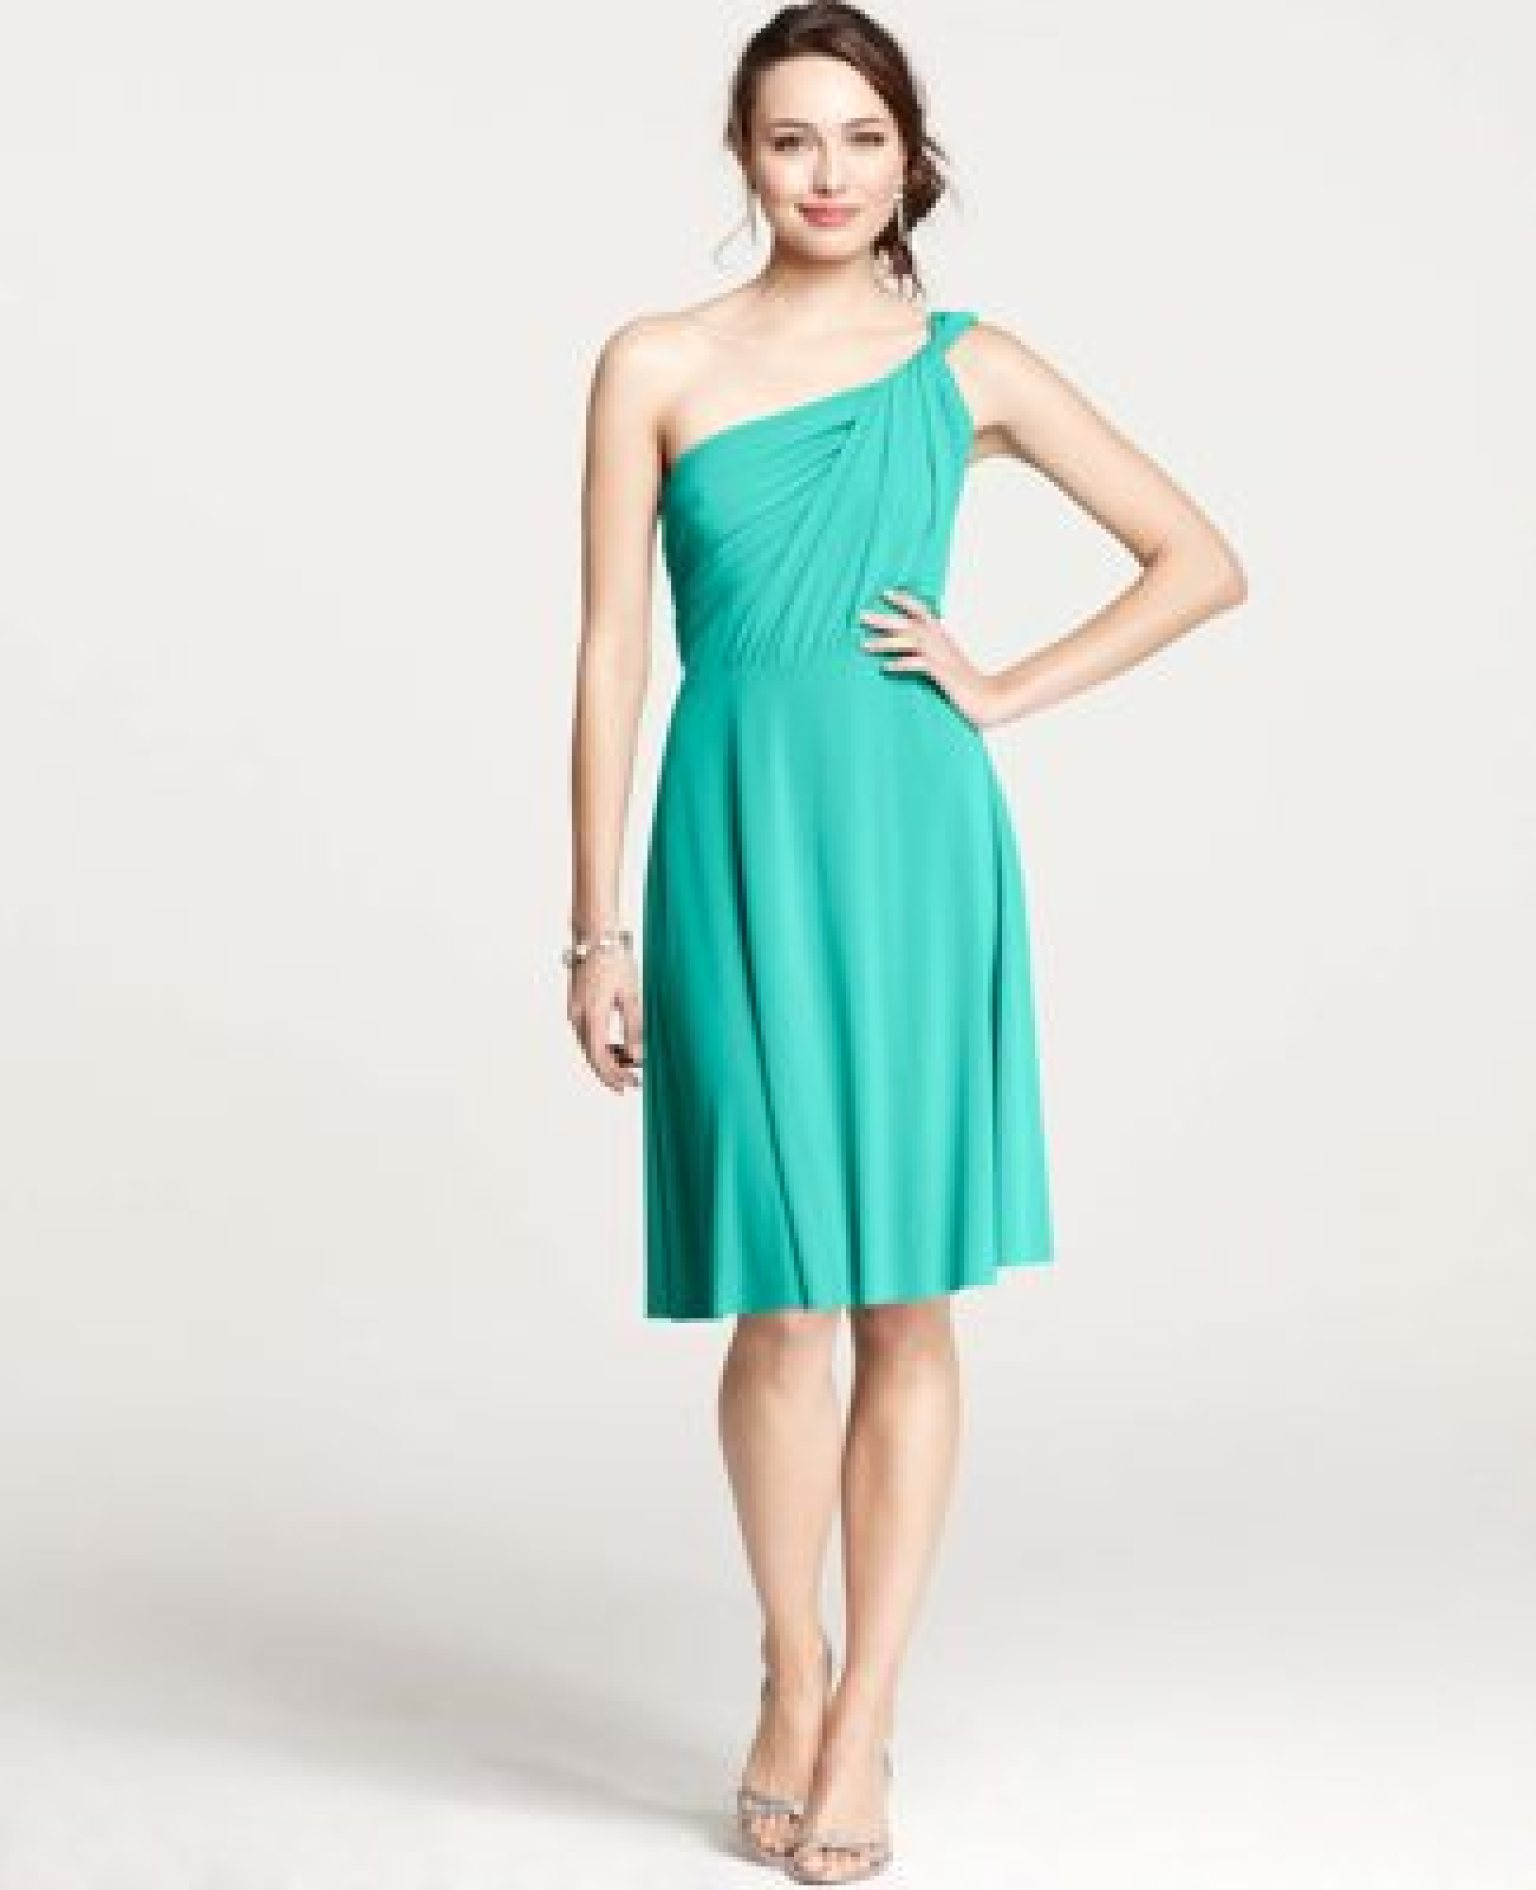 wedding guest dresses for summer affairs photos huffpost ForDress As A Wedding Guest